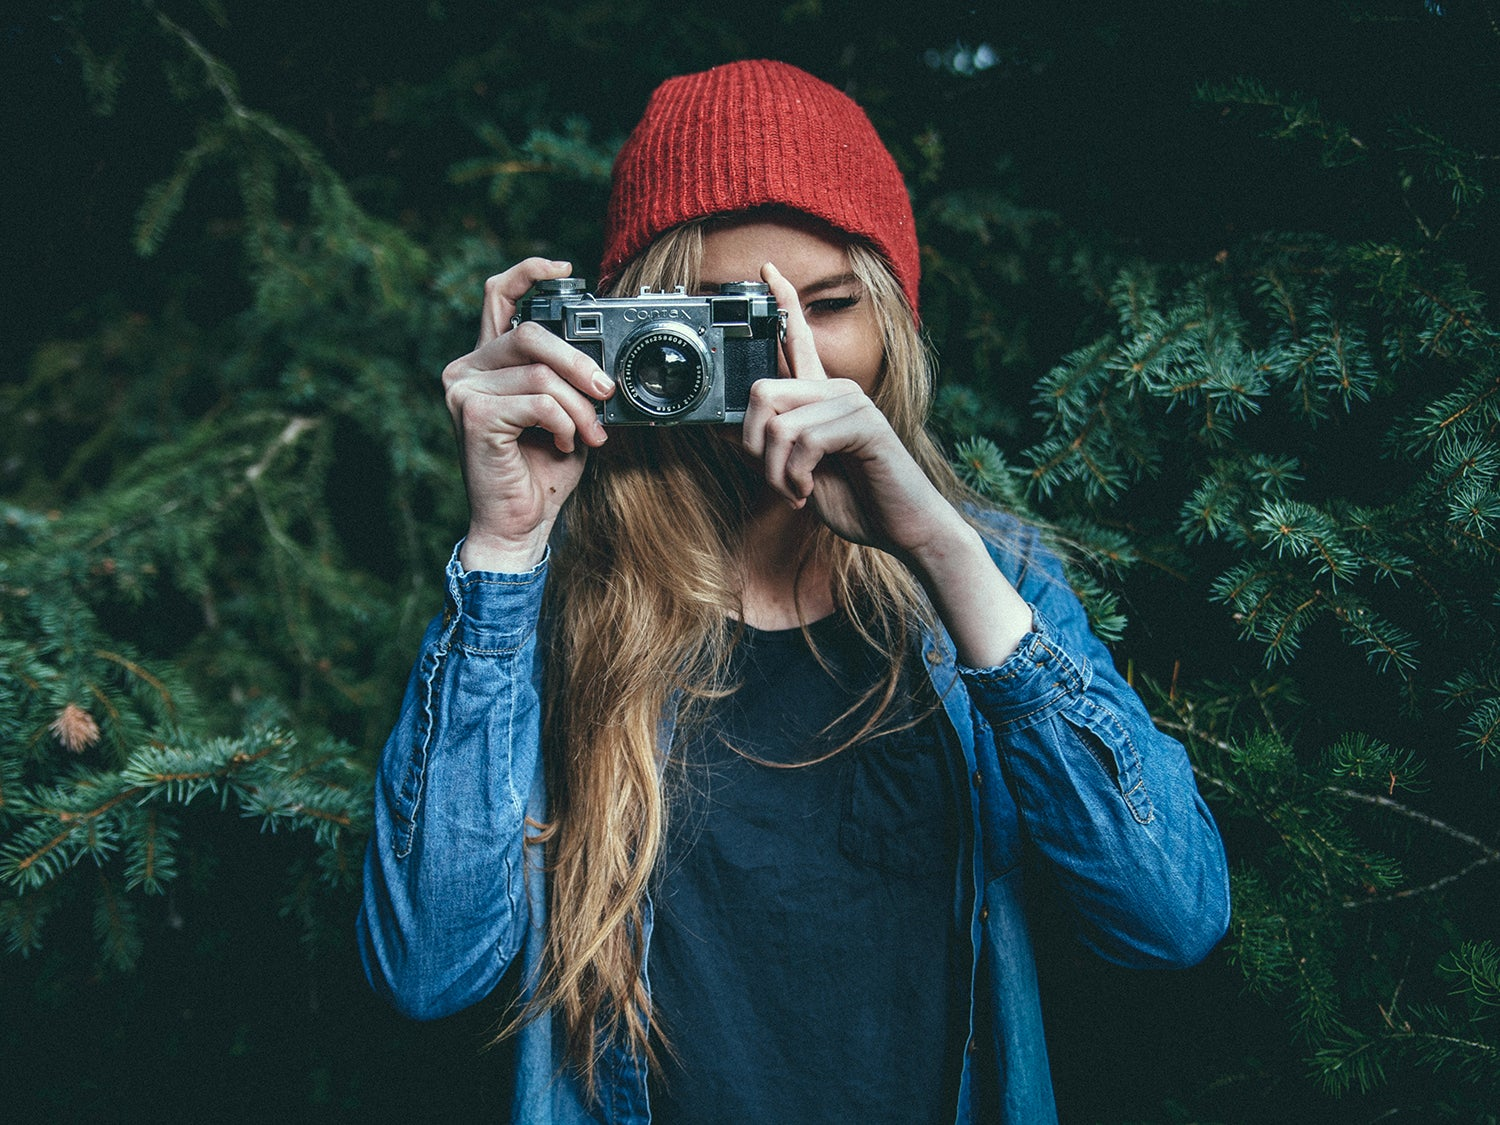 photographer in red hat against evergreen trees